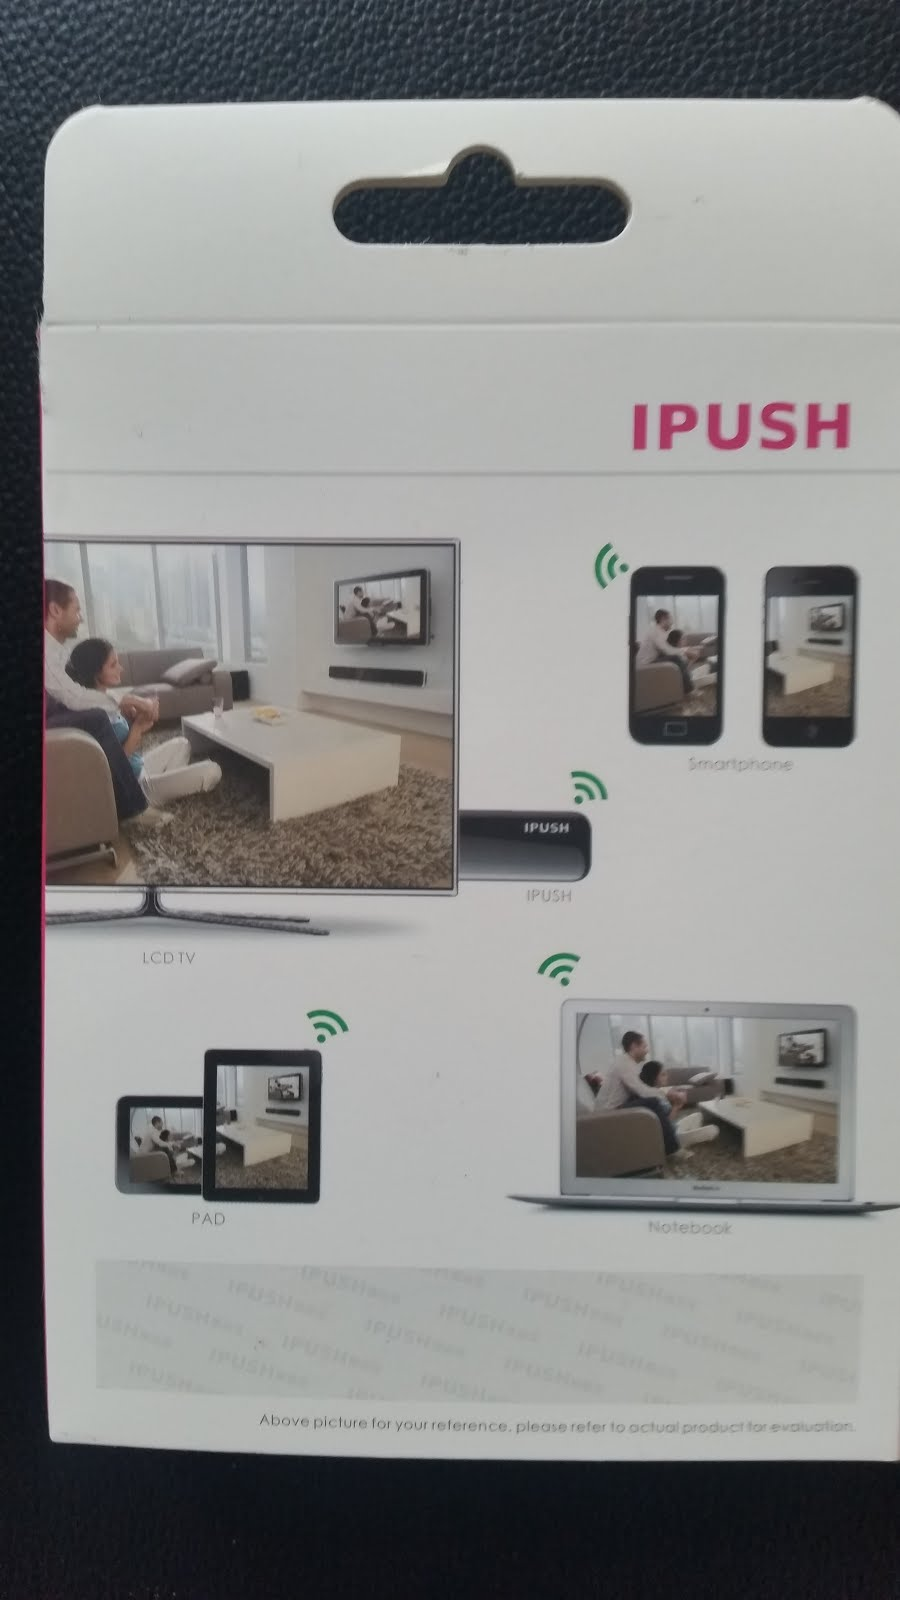 iPush Wifi TV Diffusseur USB Récepteur AirPlay DLNA pour Smartphone Tablette PC www.avalonlineshopping.com 1.jpg